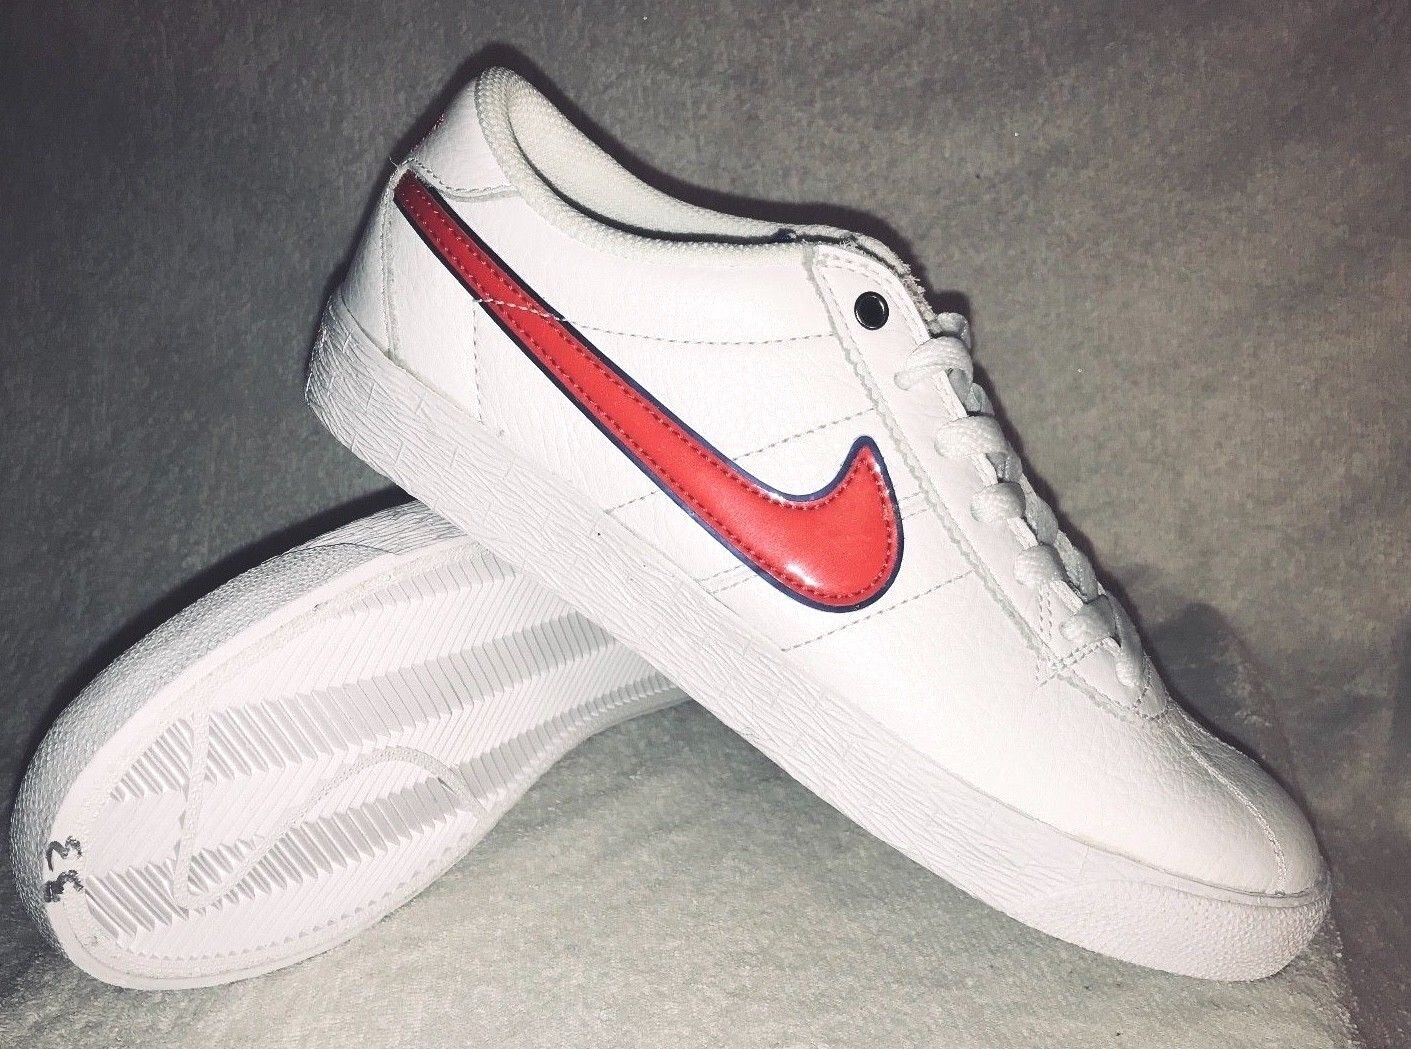 Nike Skateboard Bruin SB Premium SE QS Red White Blue 716814-164 Comfortable New shoes for men and women, limited time discount Casual wild